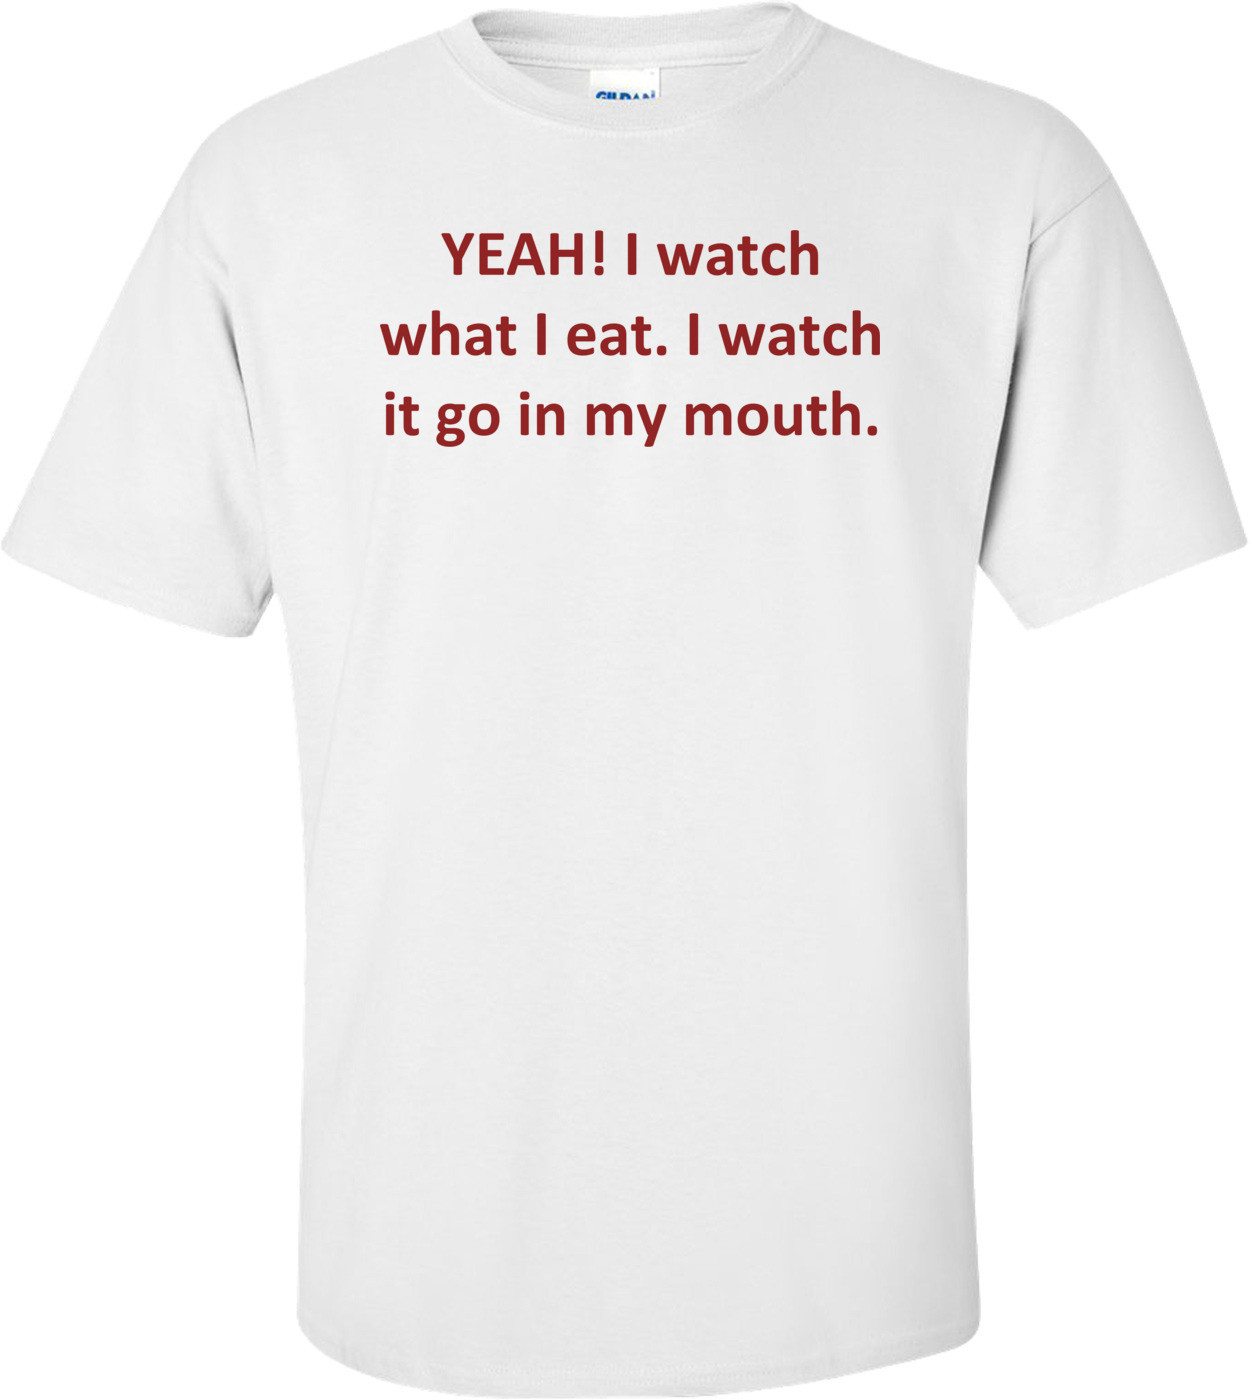 YEAH! I watch what I eat. I watch it go in my mouth. Shirt